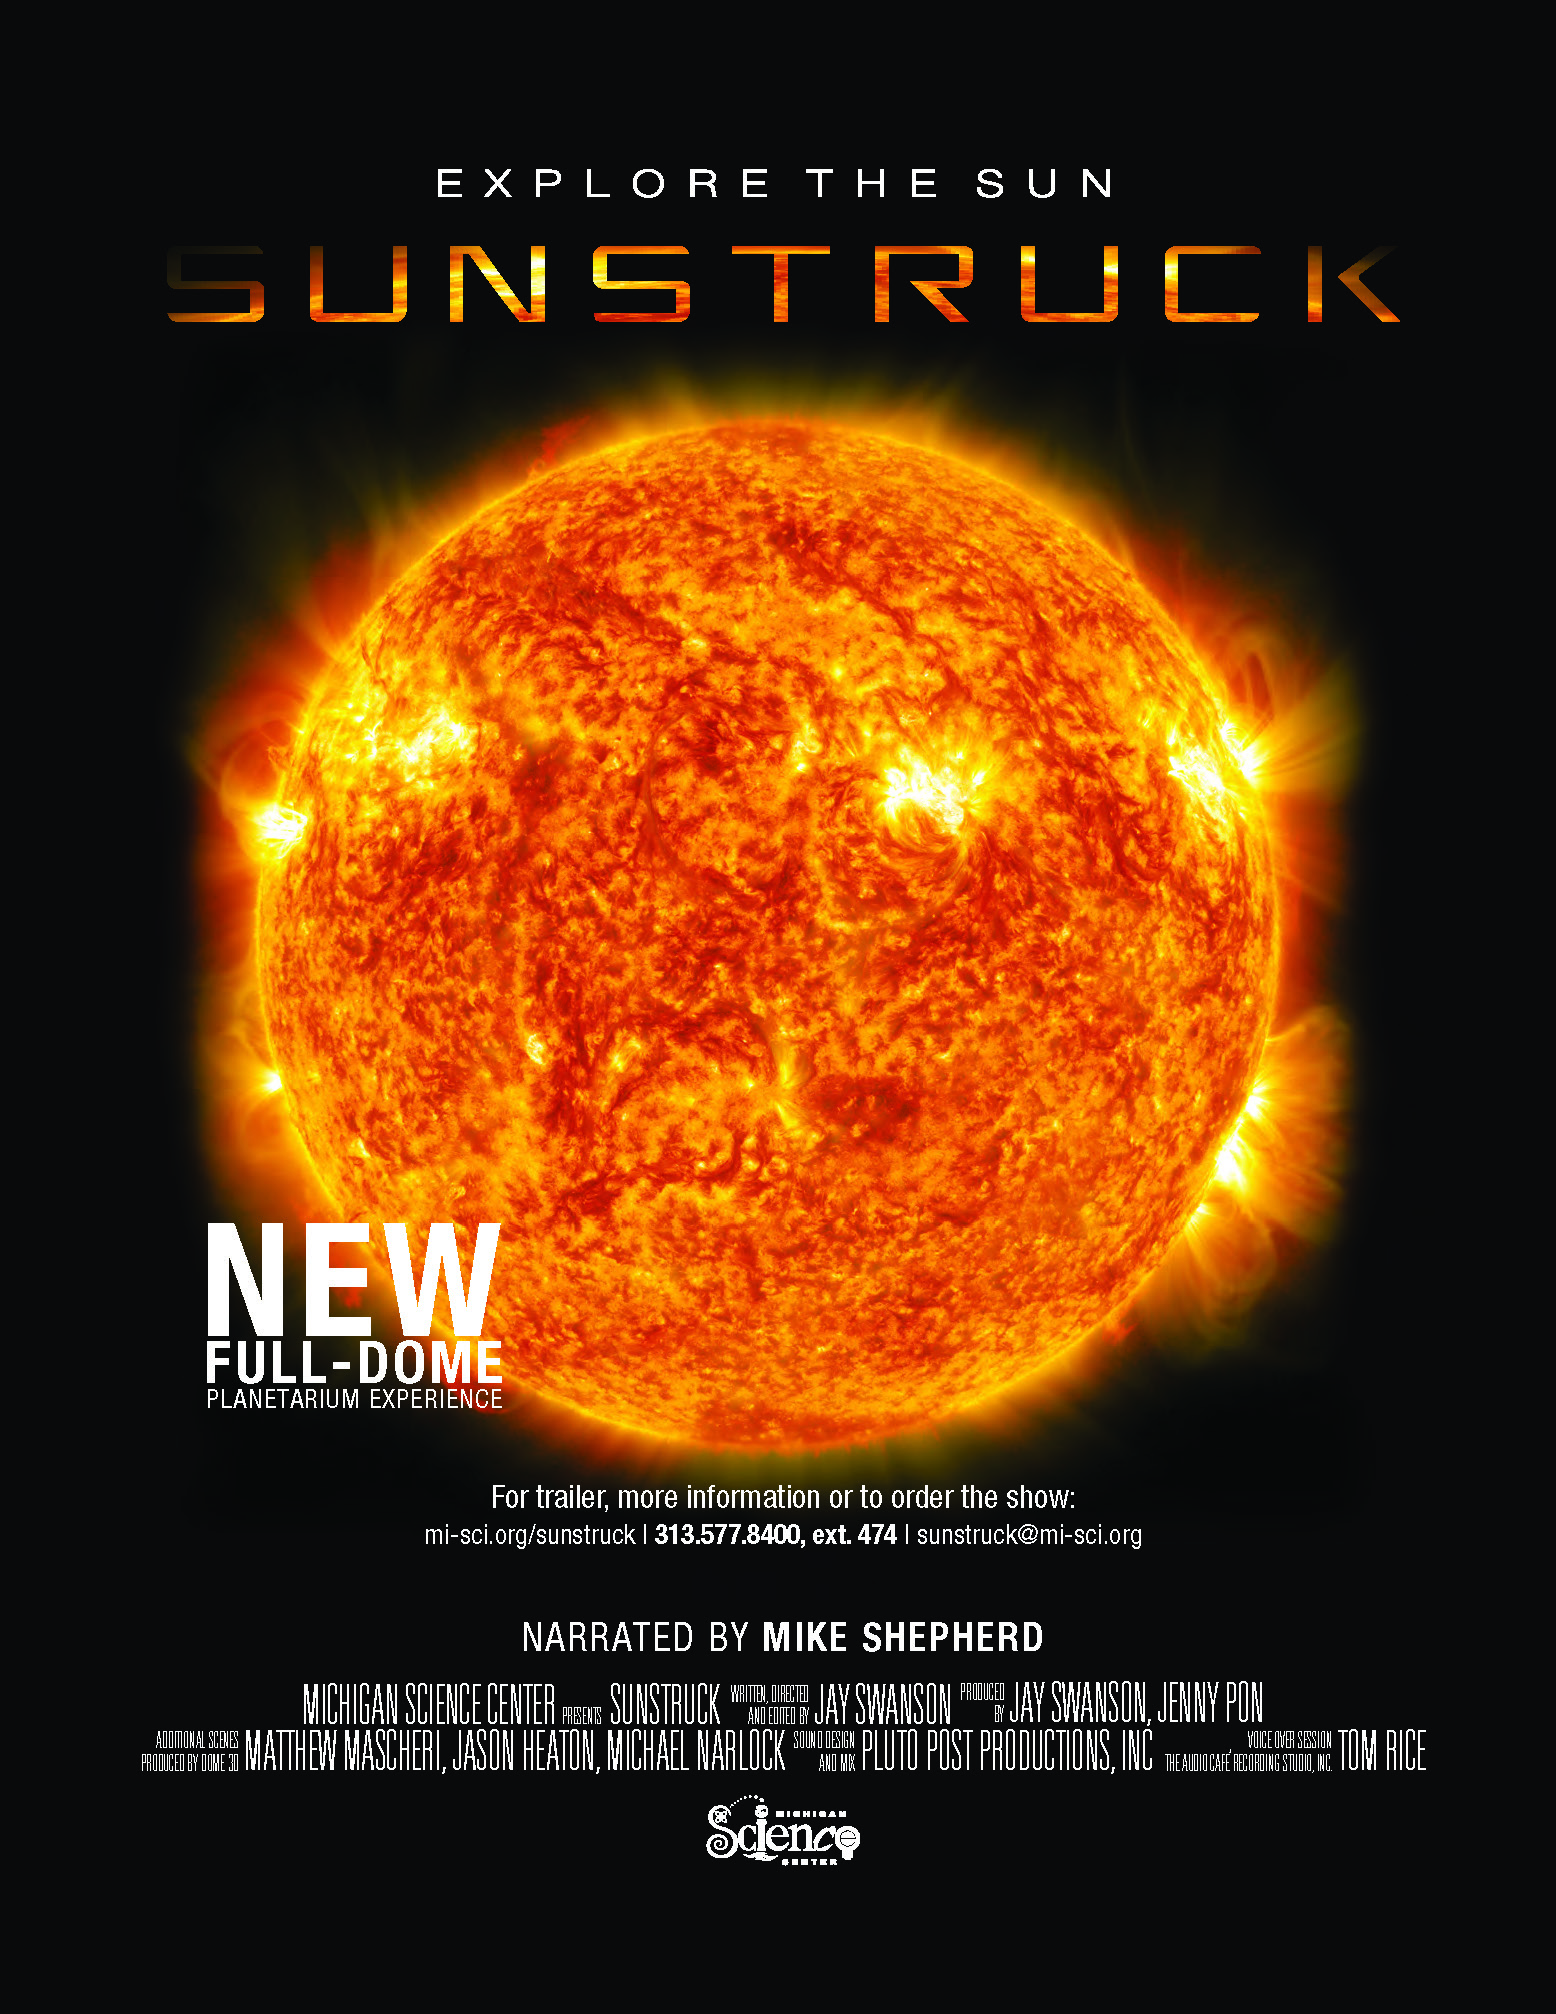 Sunstruck: Exploration of the Sun